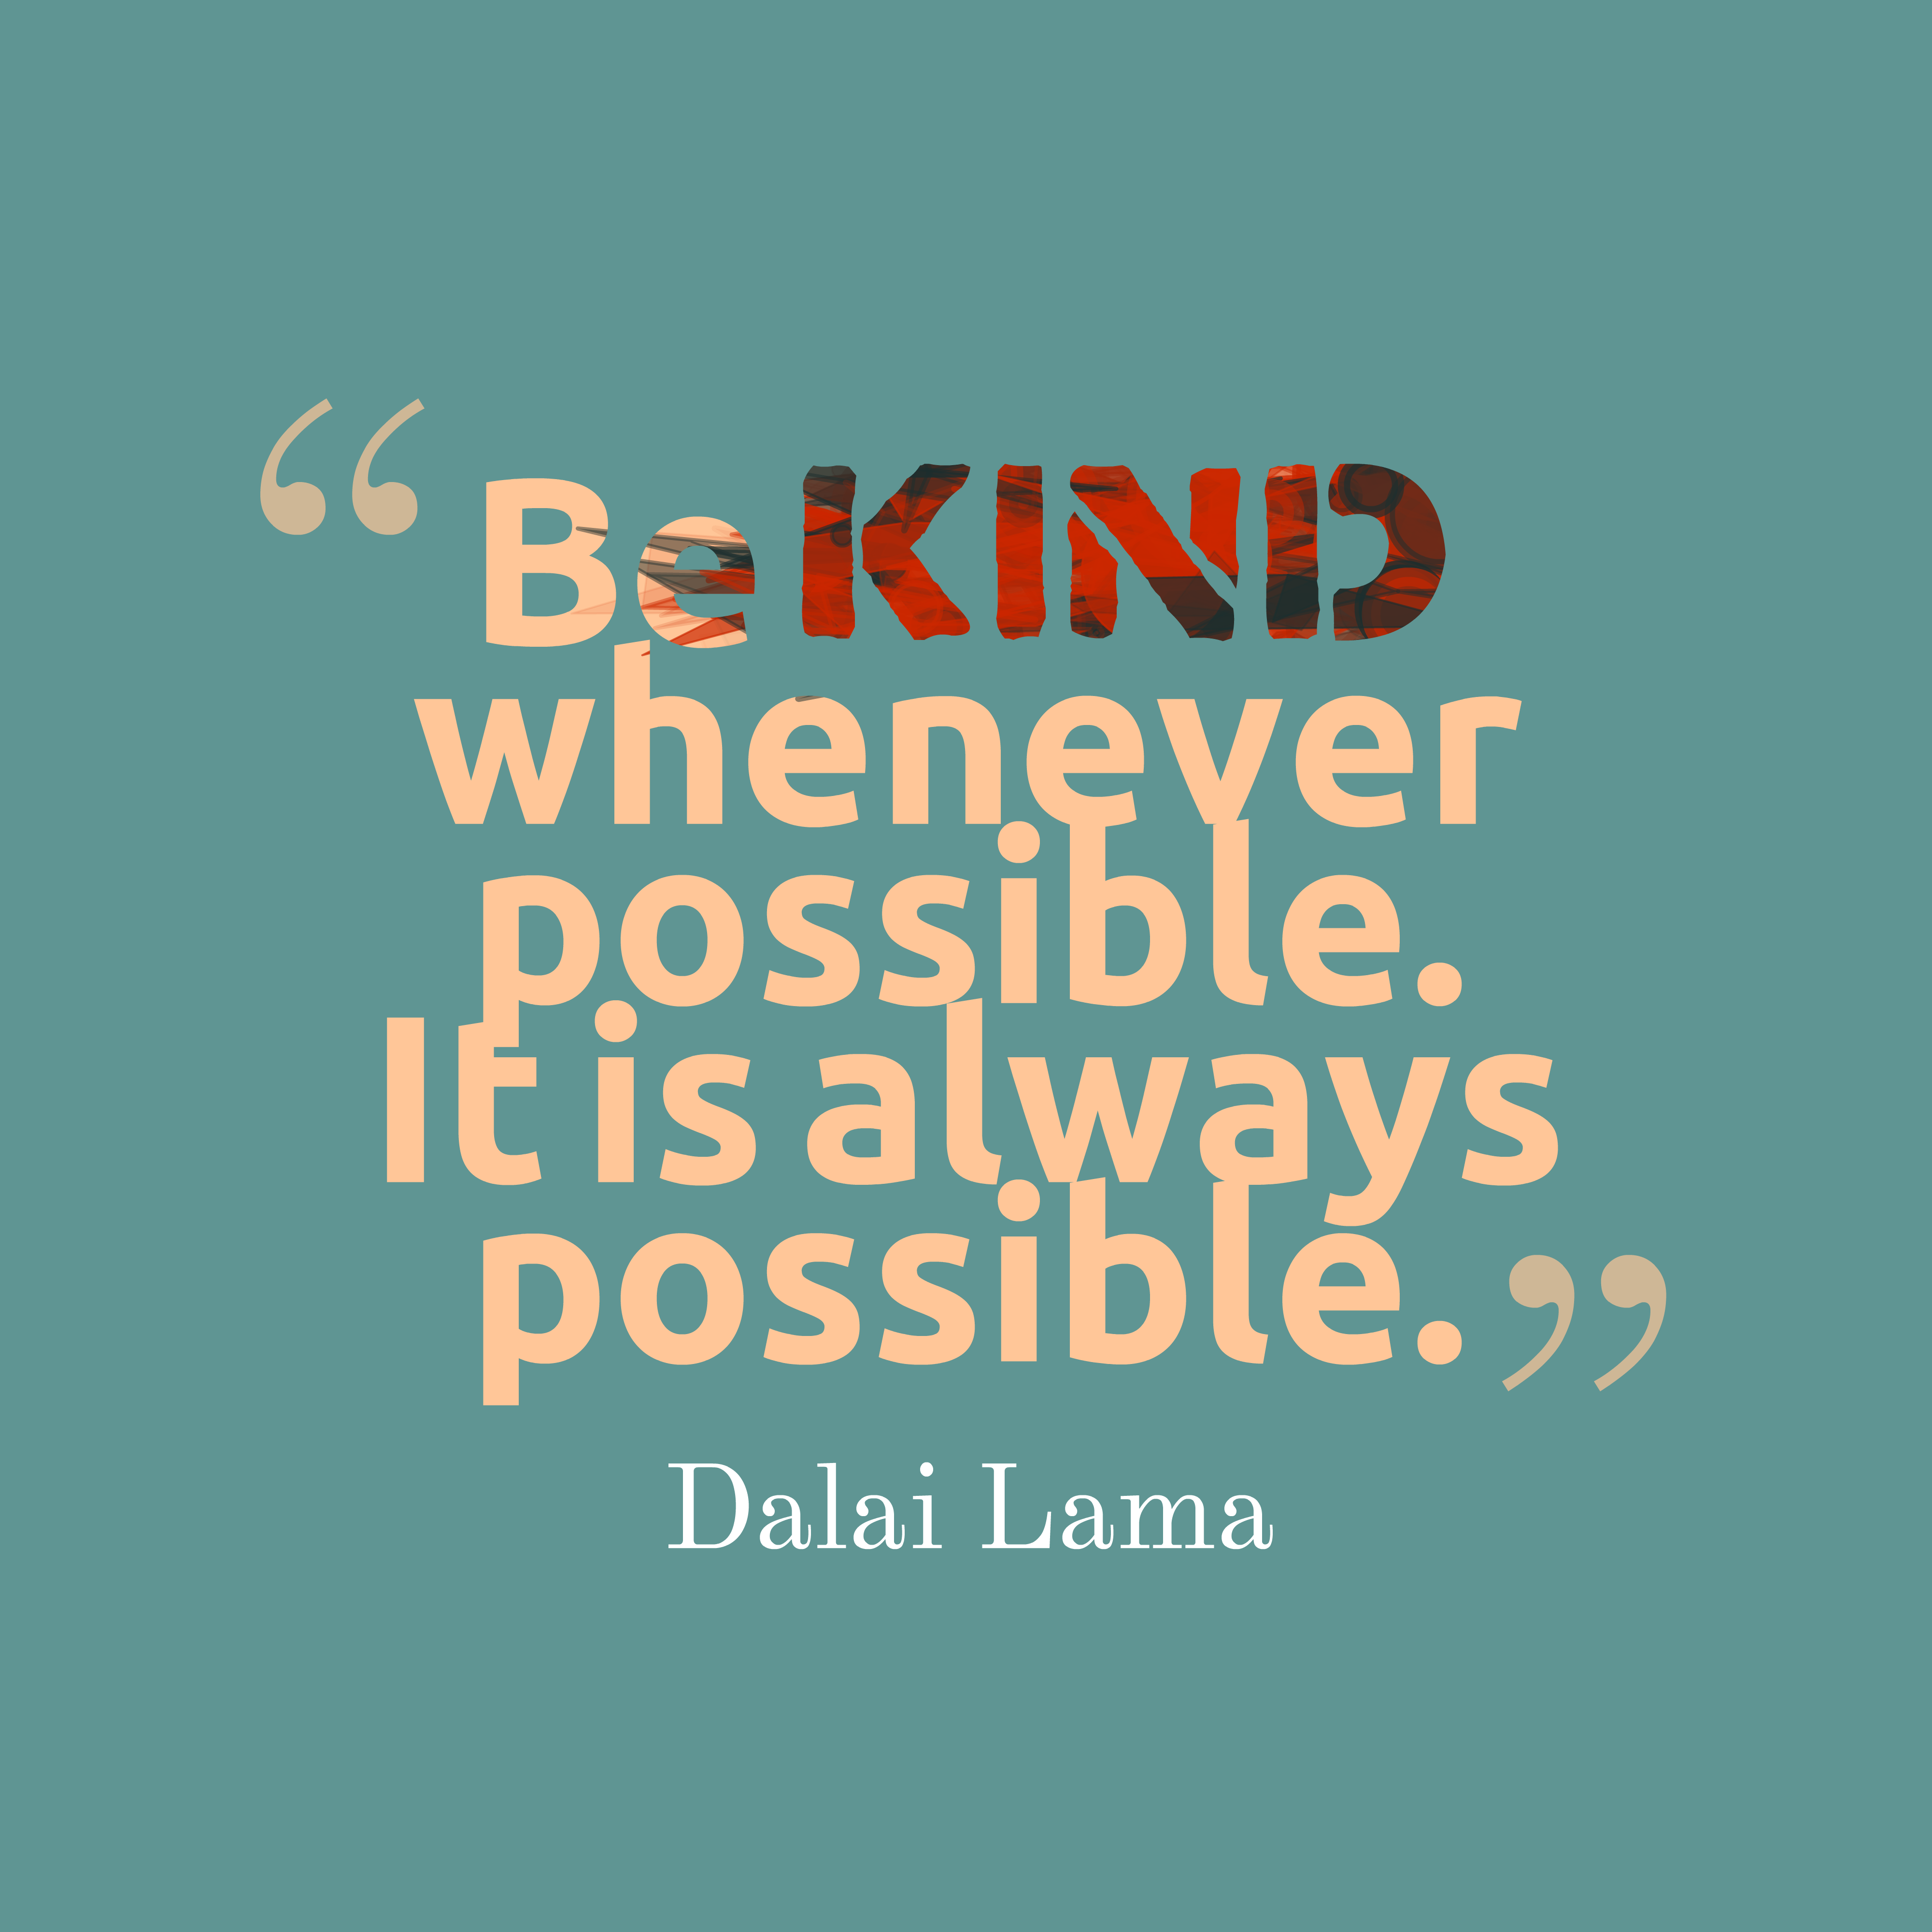 Be kind whenever possible. It is always possible.